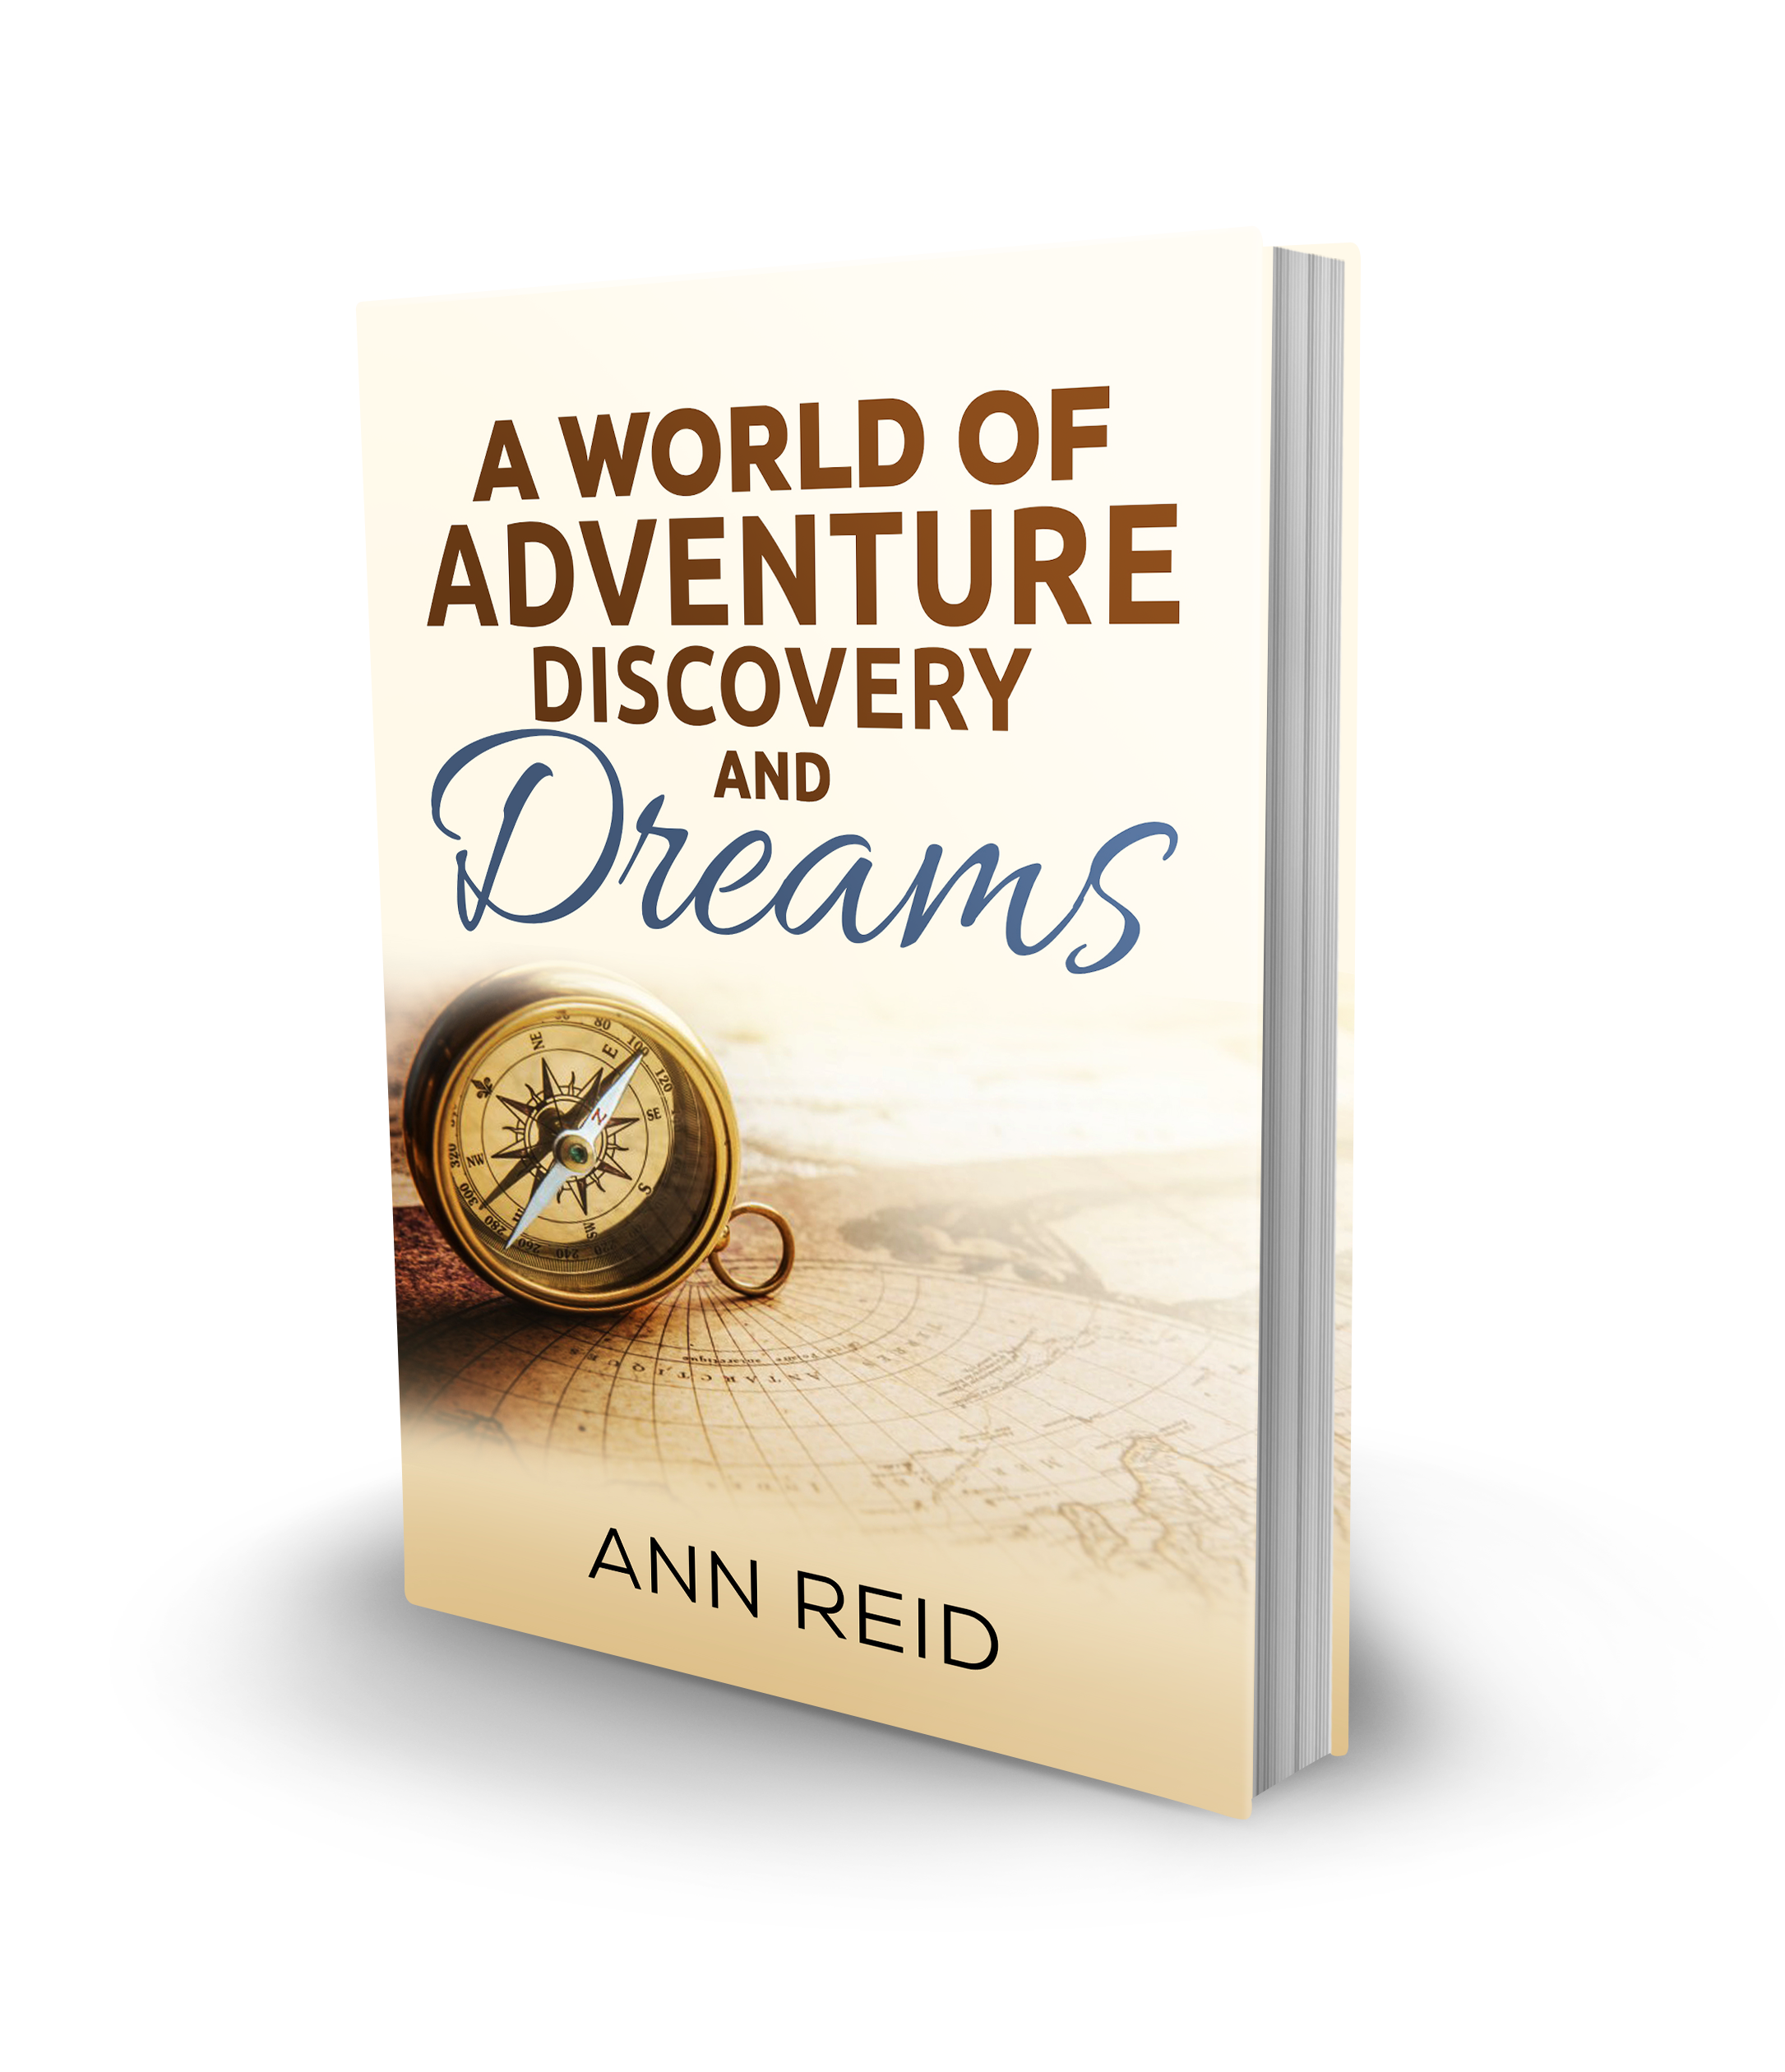 A World of Adventure Discovery and Dreams